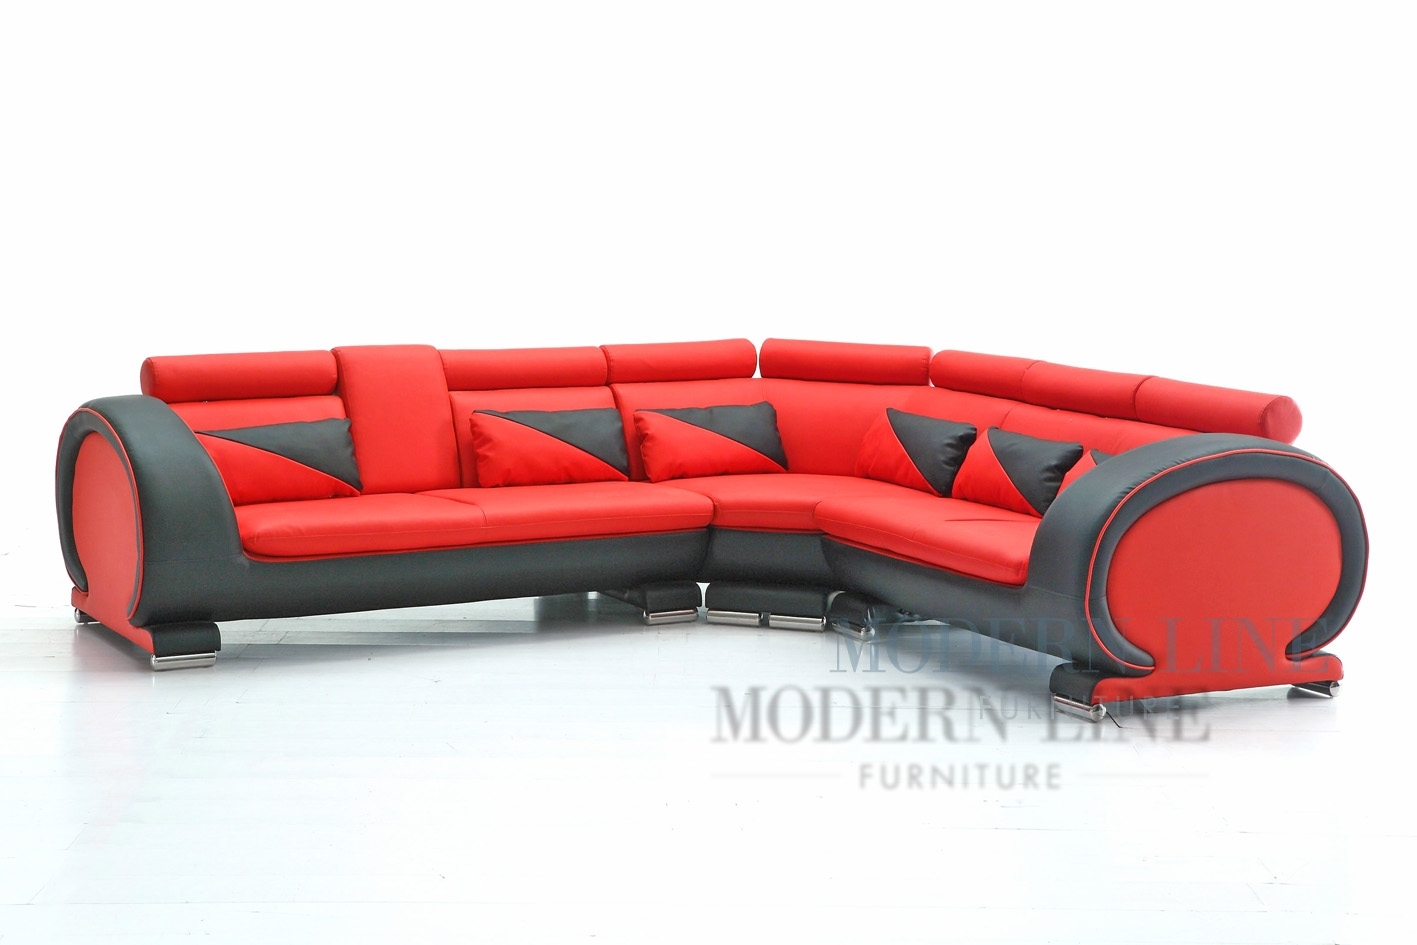 10 Best Ideas Red Black Sectional Sofas | Sofa Ideas